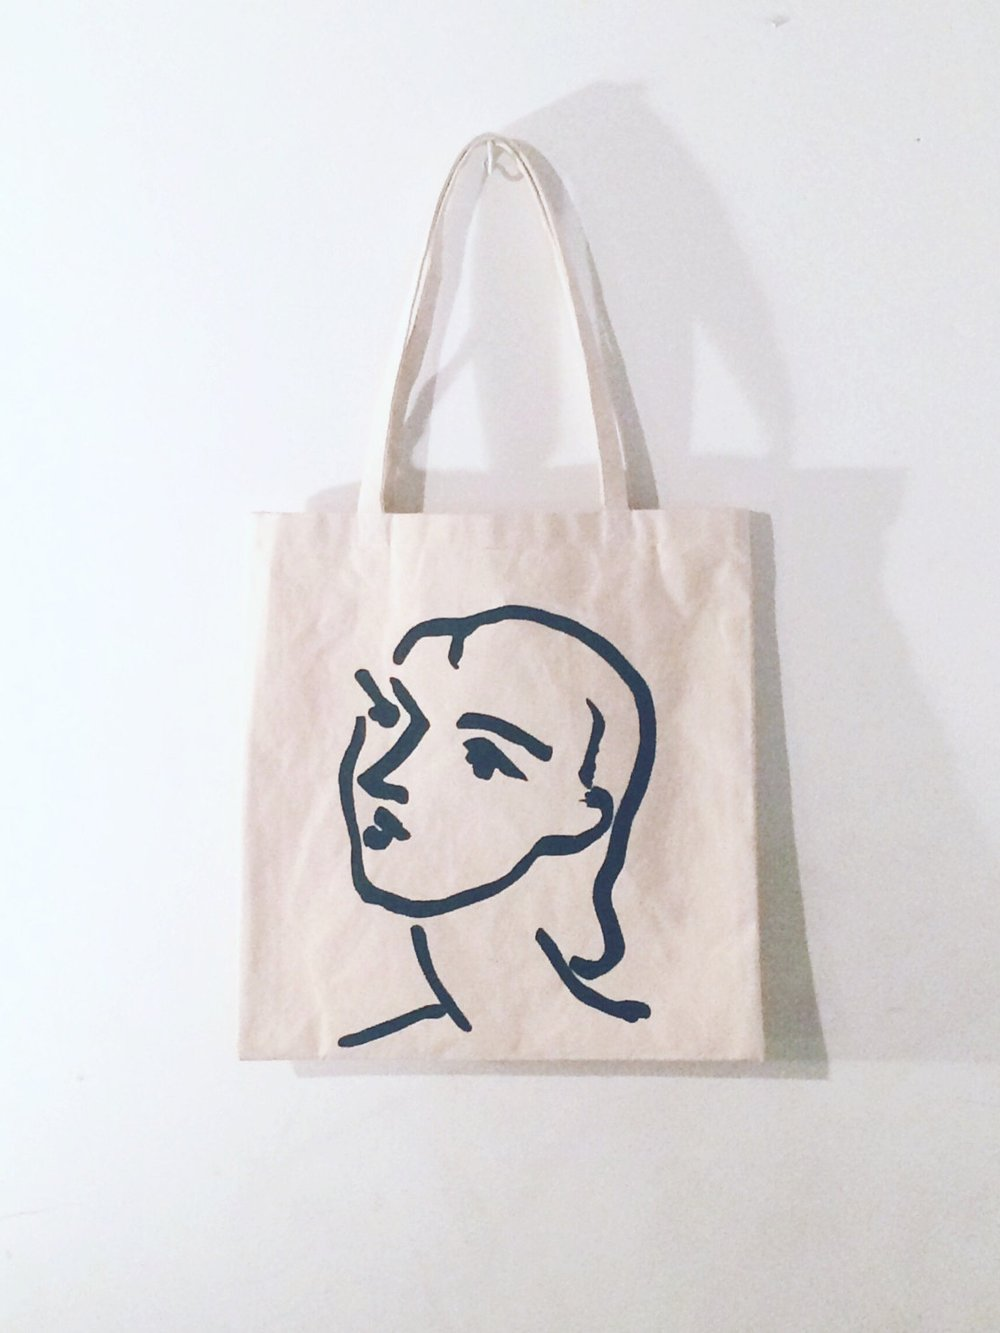 PEUIMPORTE VINTAGE Matisse Tote Bag  Matisse hand painted organic cotton tote bag. Made to order.